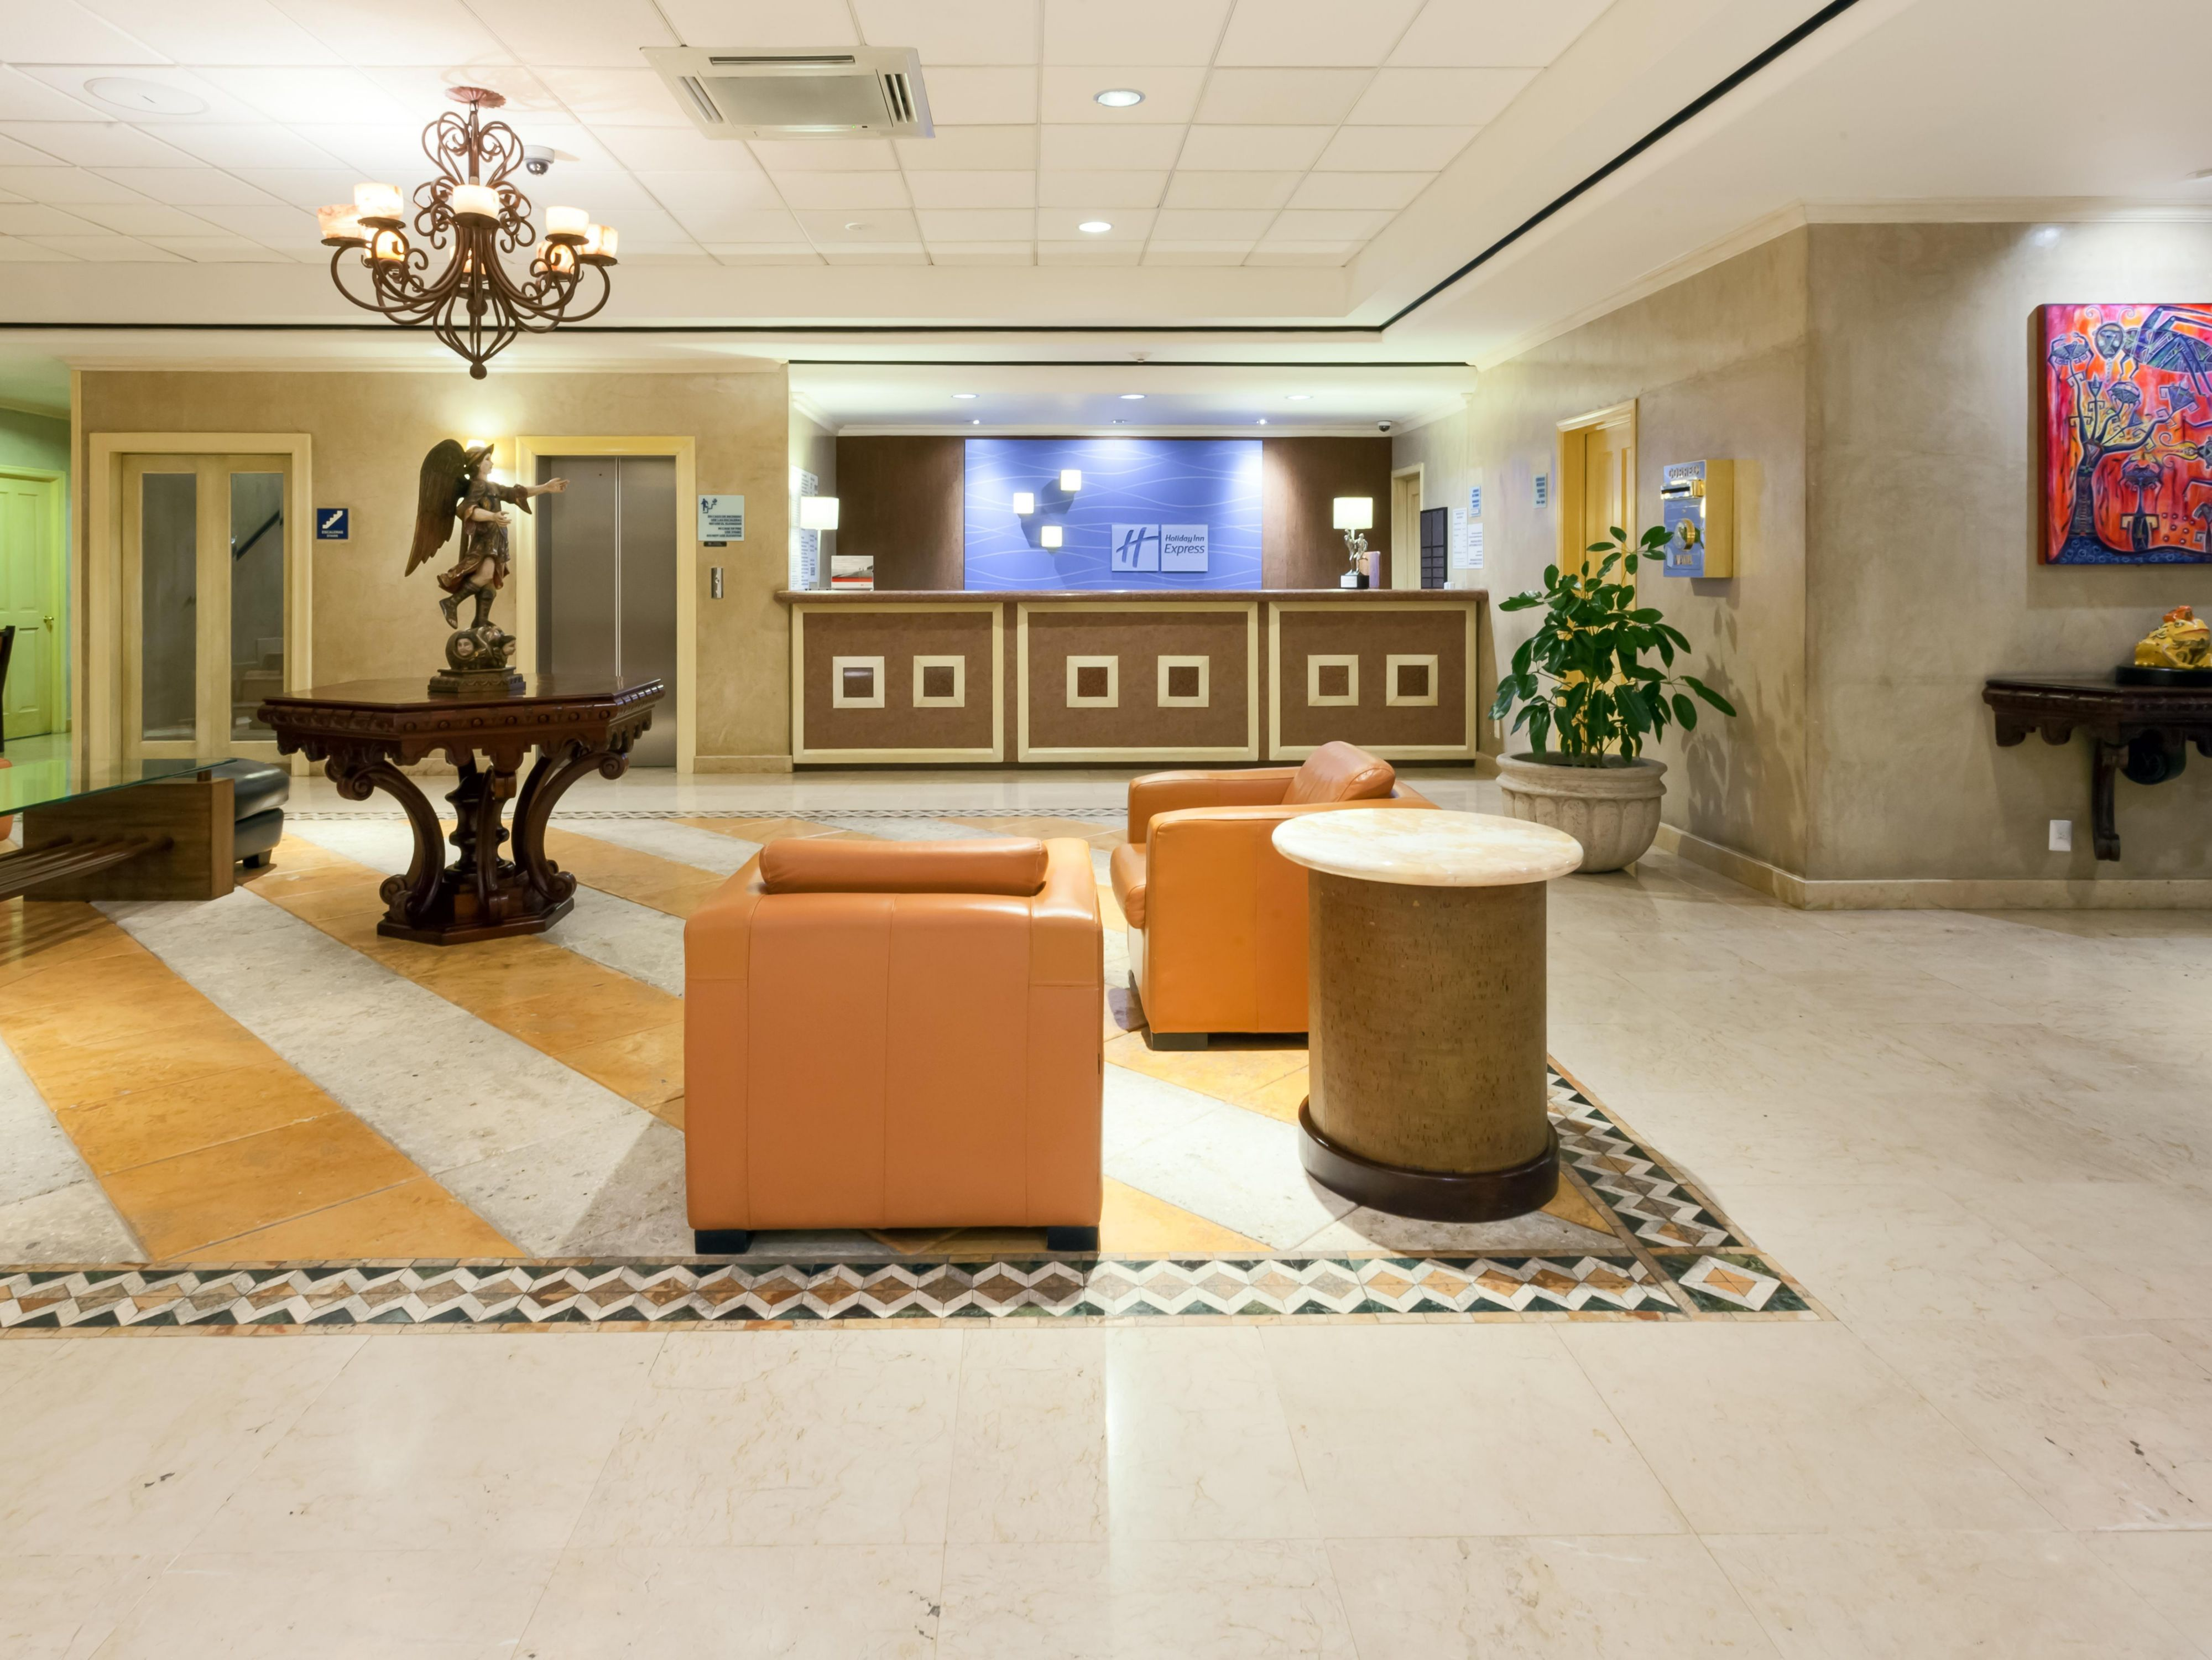 Step inside our stylish Lobby